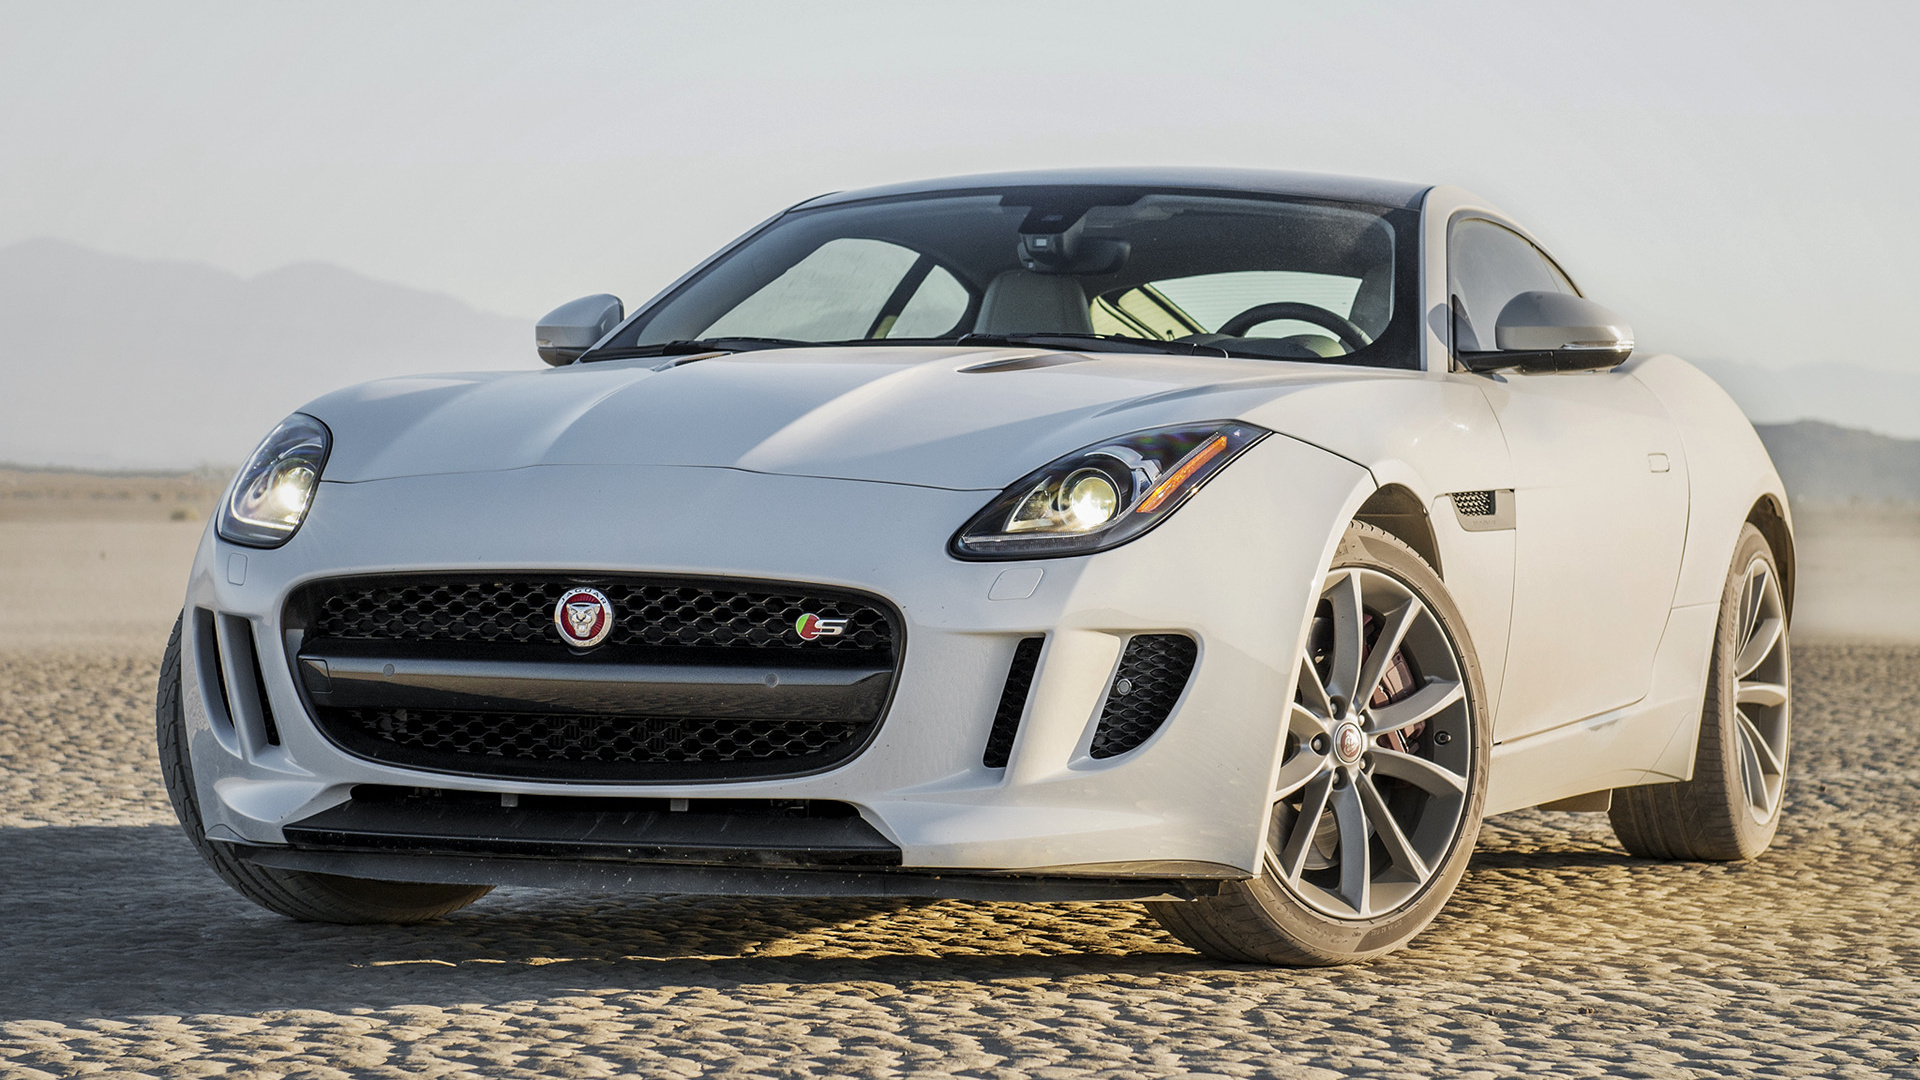 Jaguar f type coupe wallpaper - photo#9